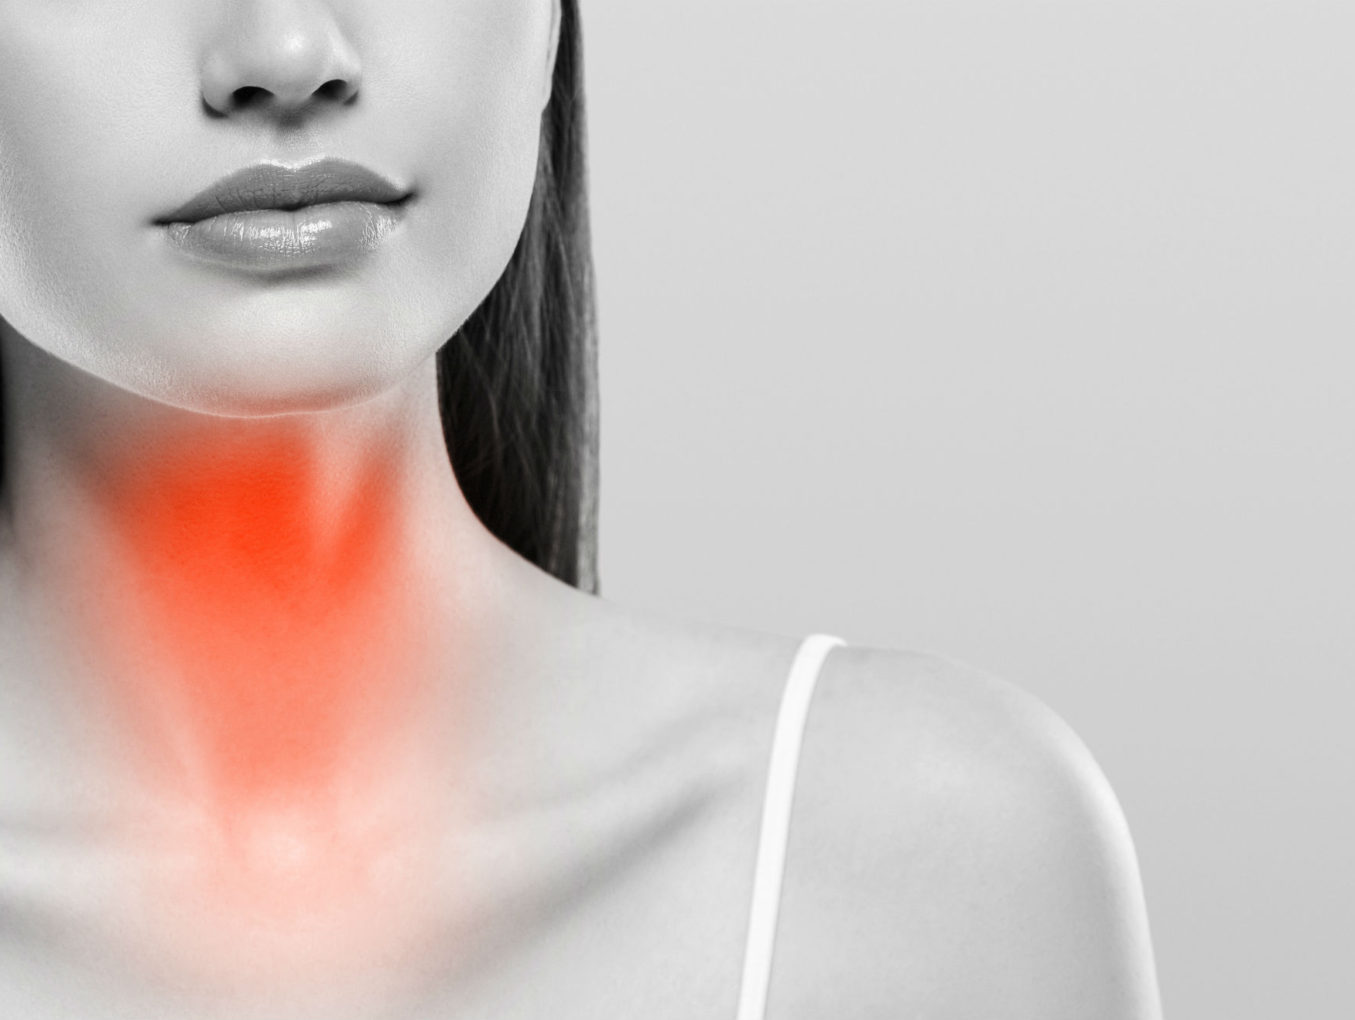 How To Deal With Hypothyroidism